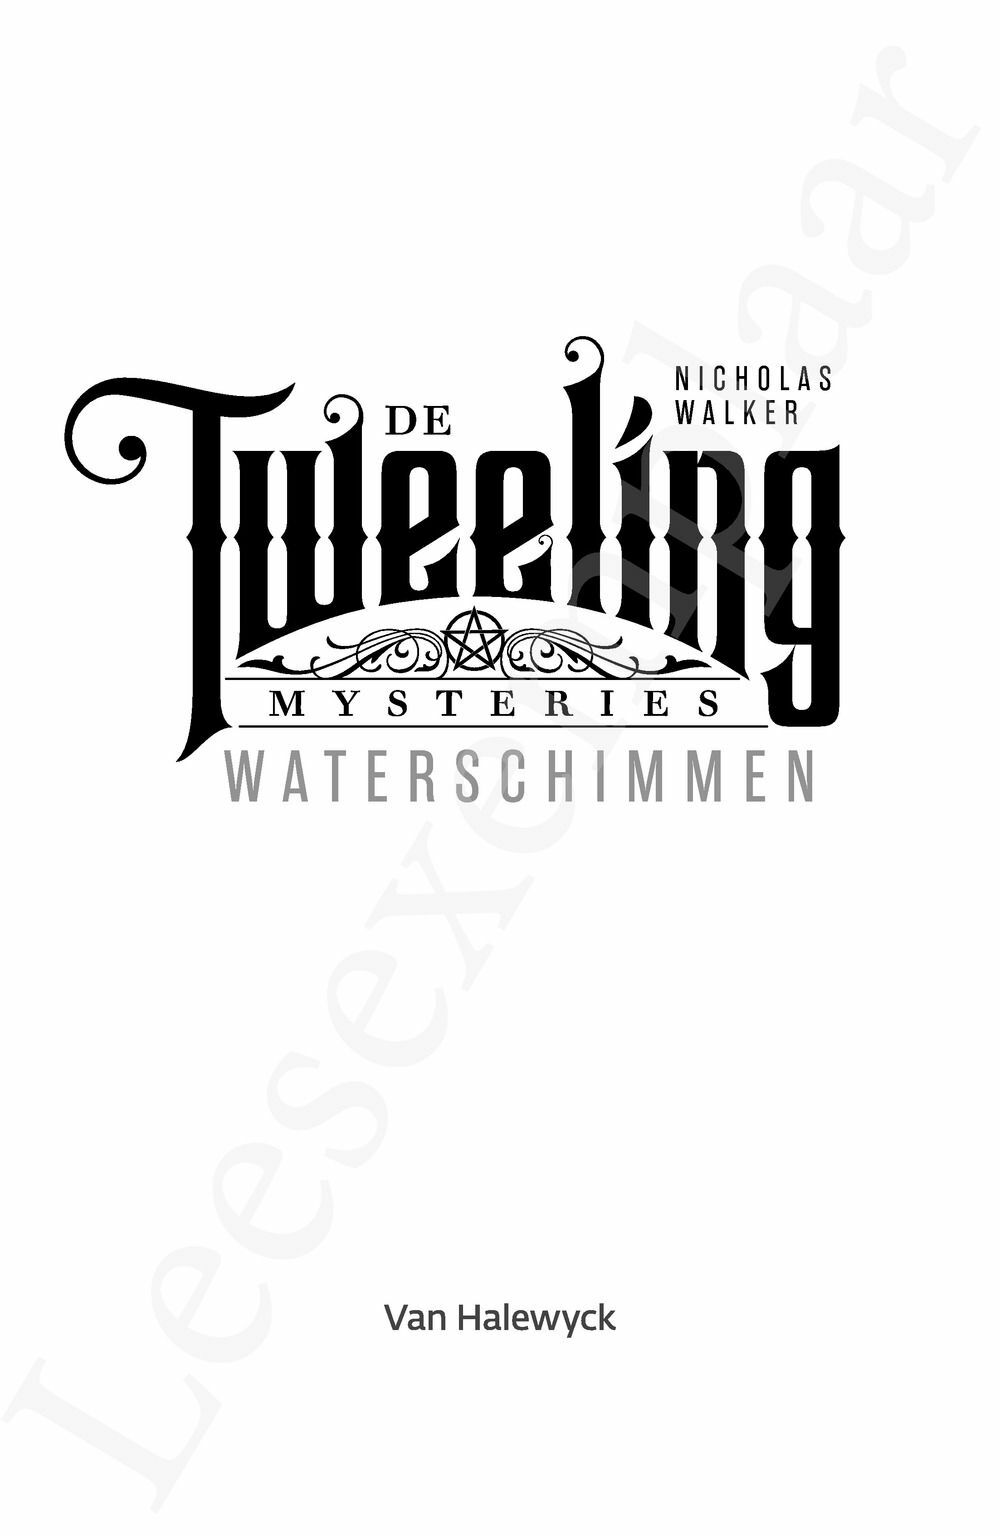 Preview: De tweeling mysteries: Waterschimmen